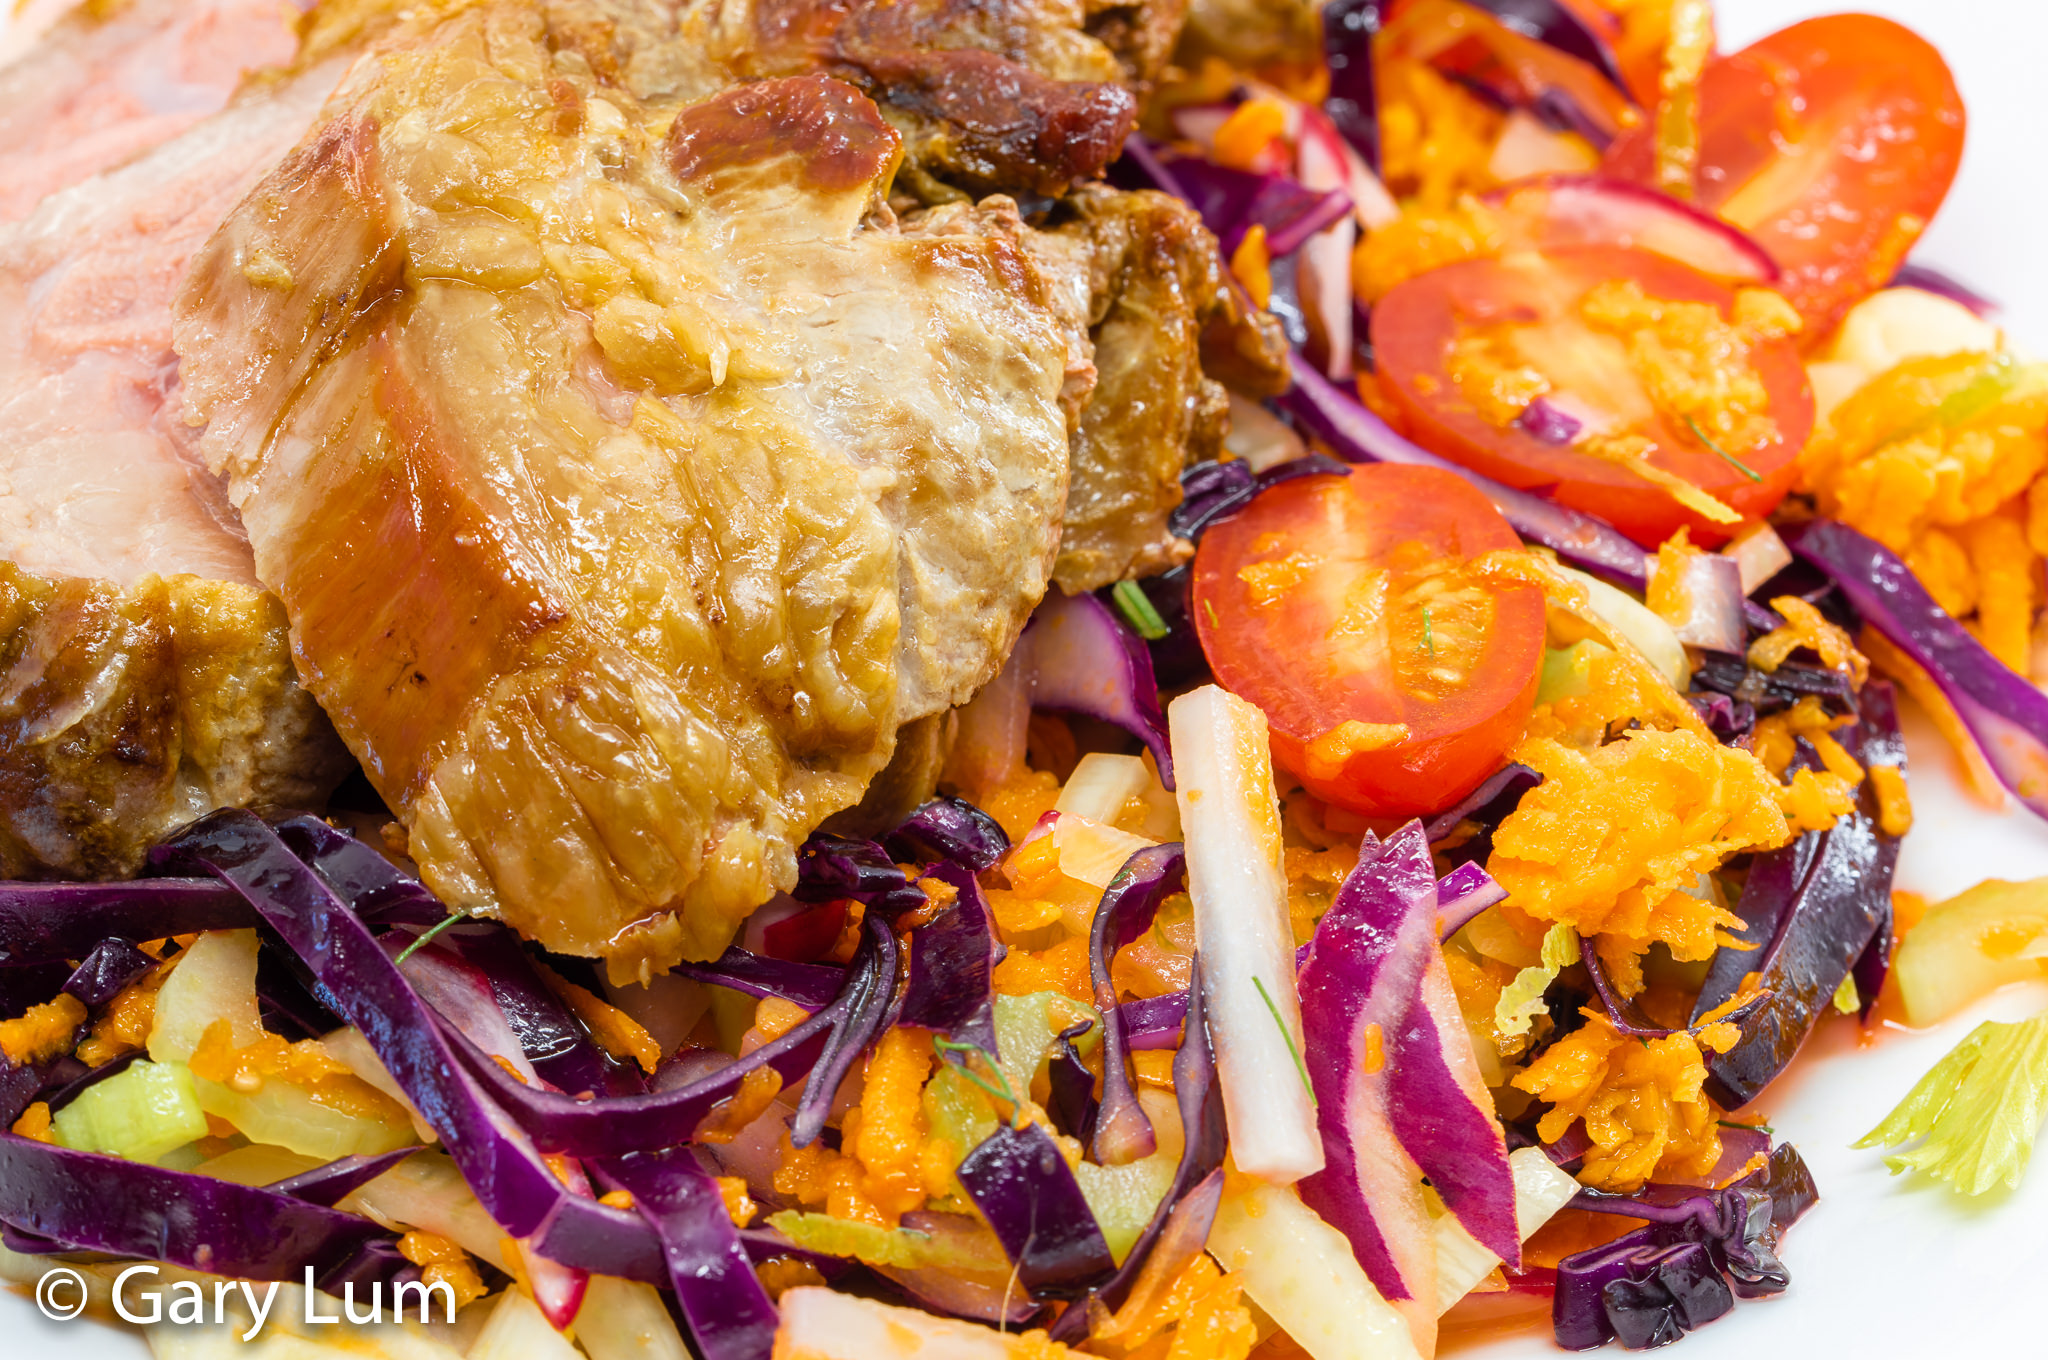 Australia Day 2020 Roast Lamb Shoulder with fresh slaw. Gary Lum.